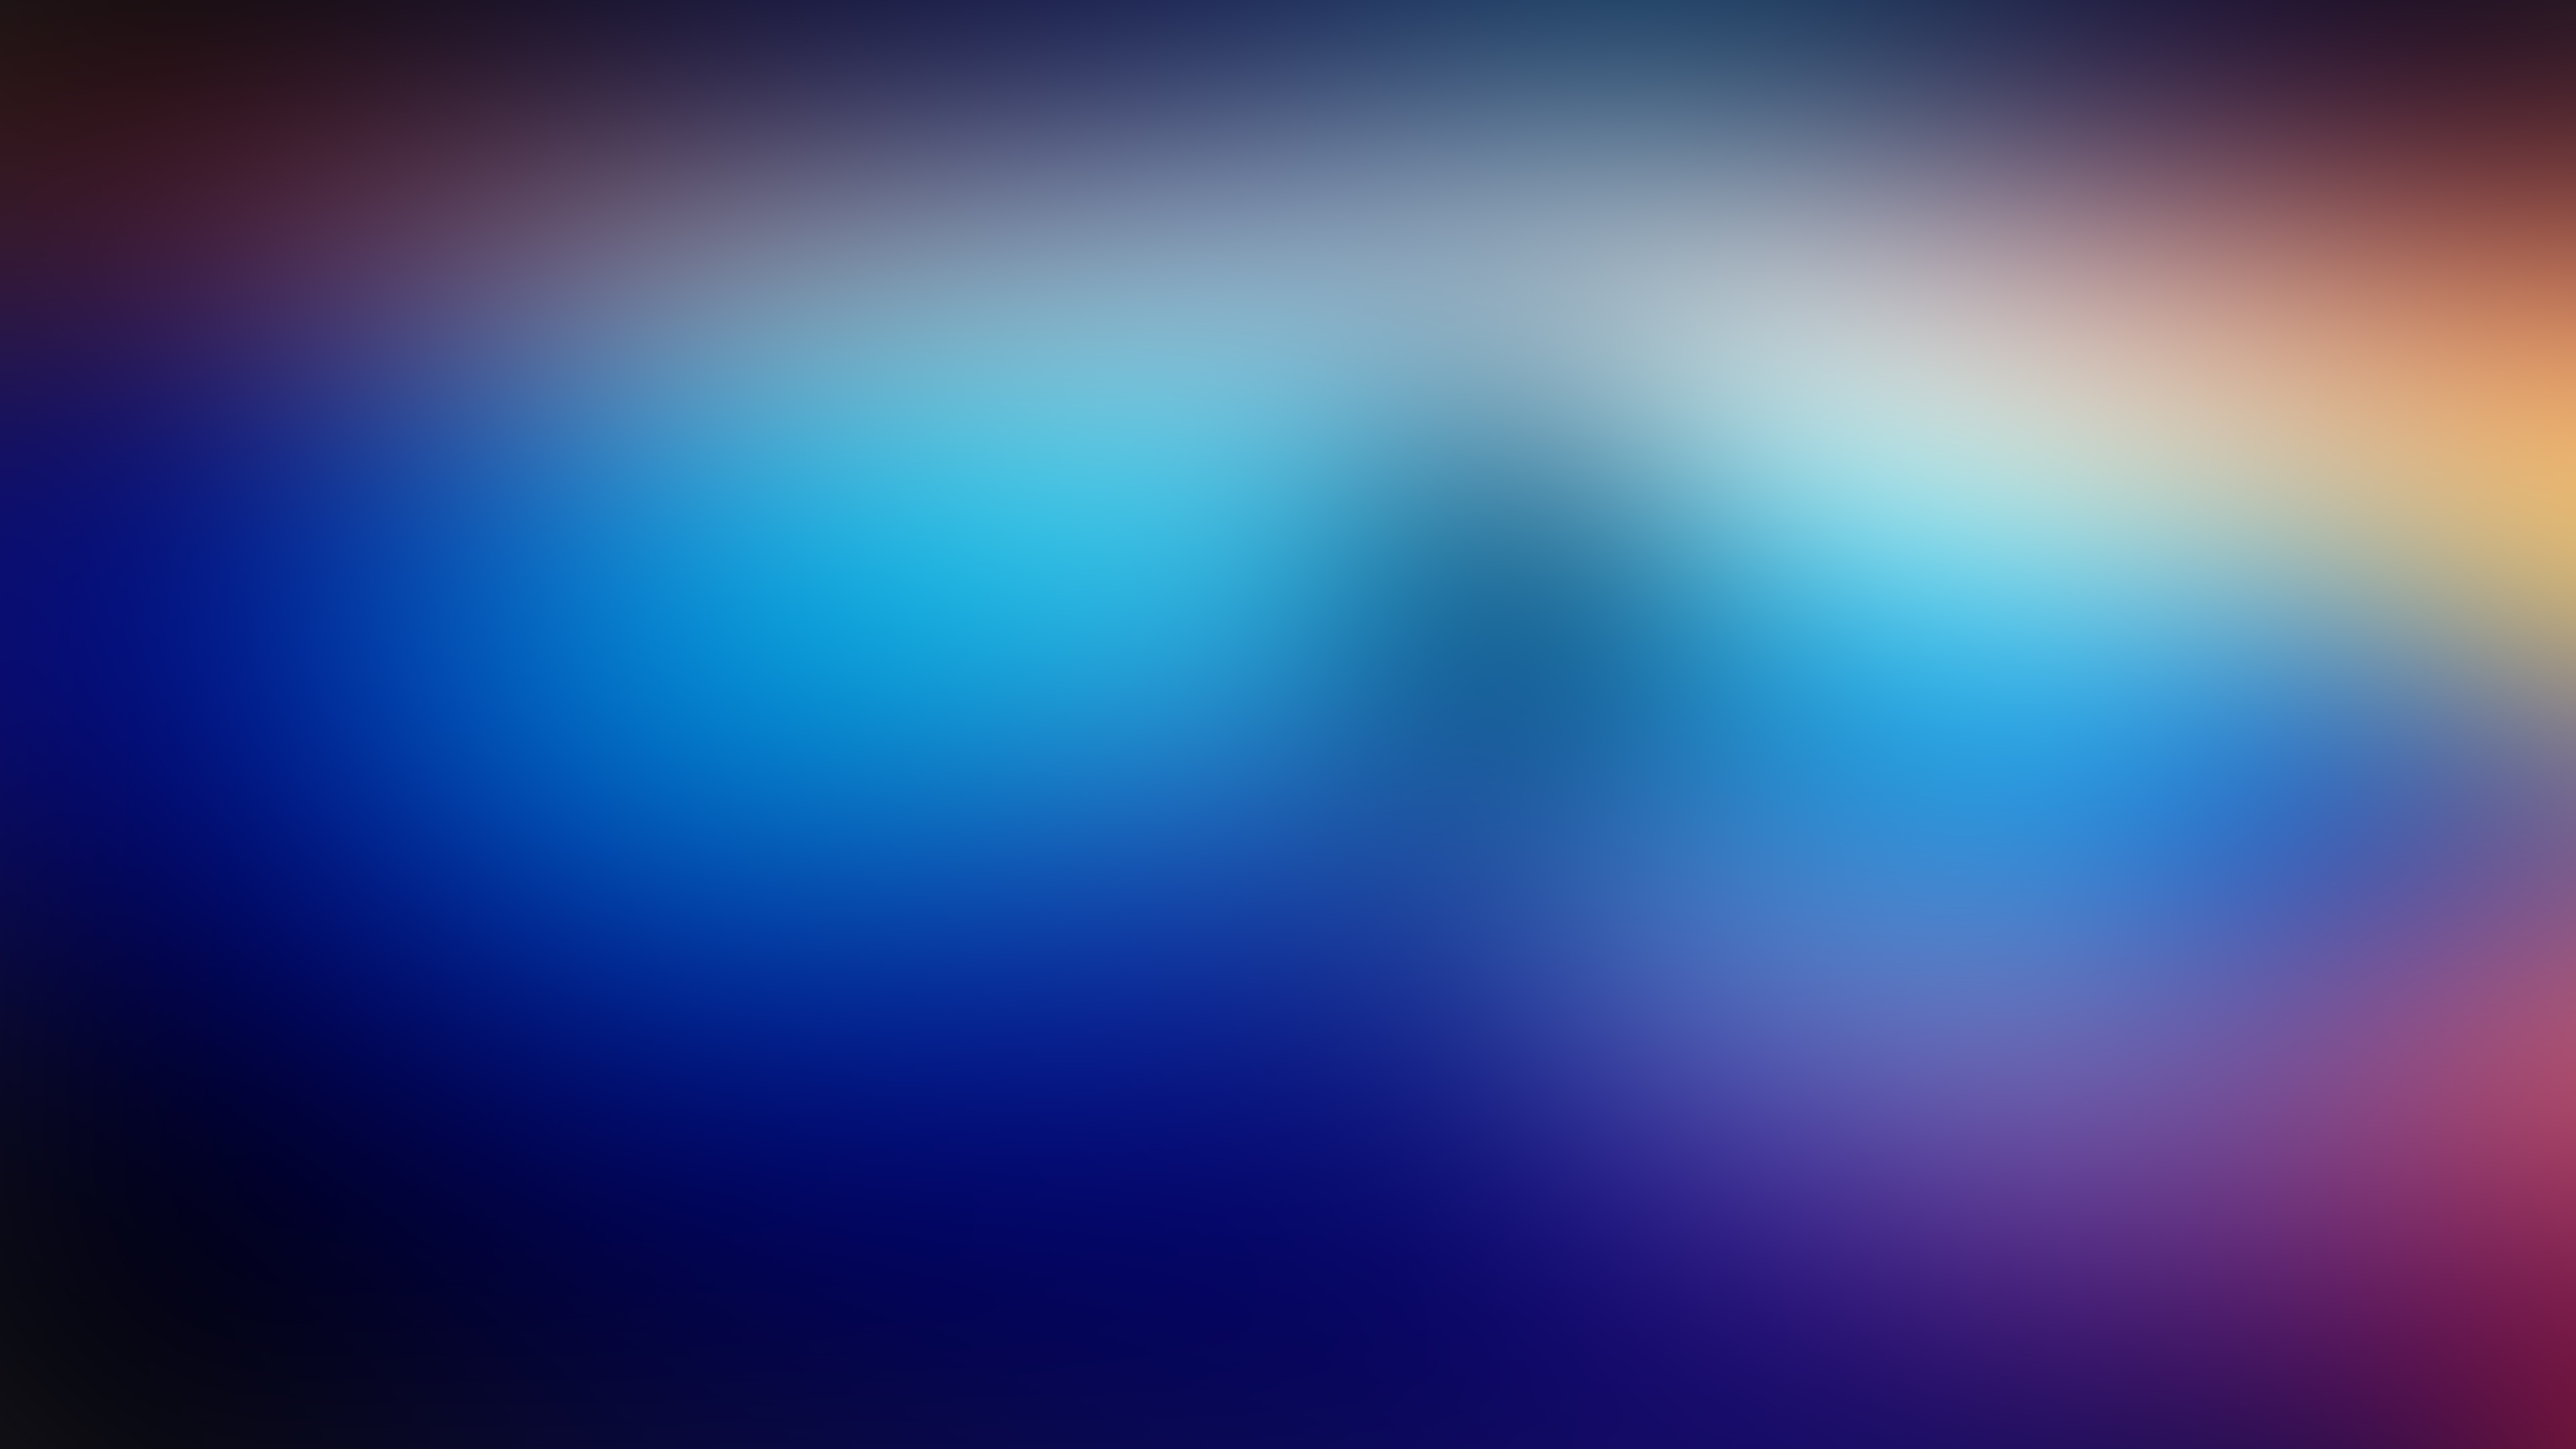 Abstract Dark Colorful Subtle 4k Hd Abstract 4k Wallpapers